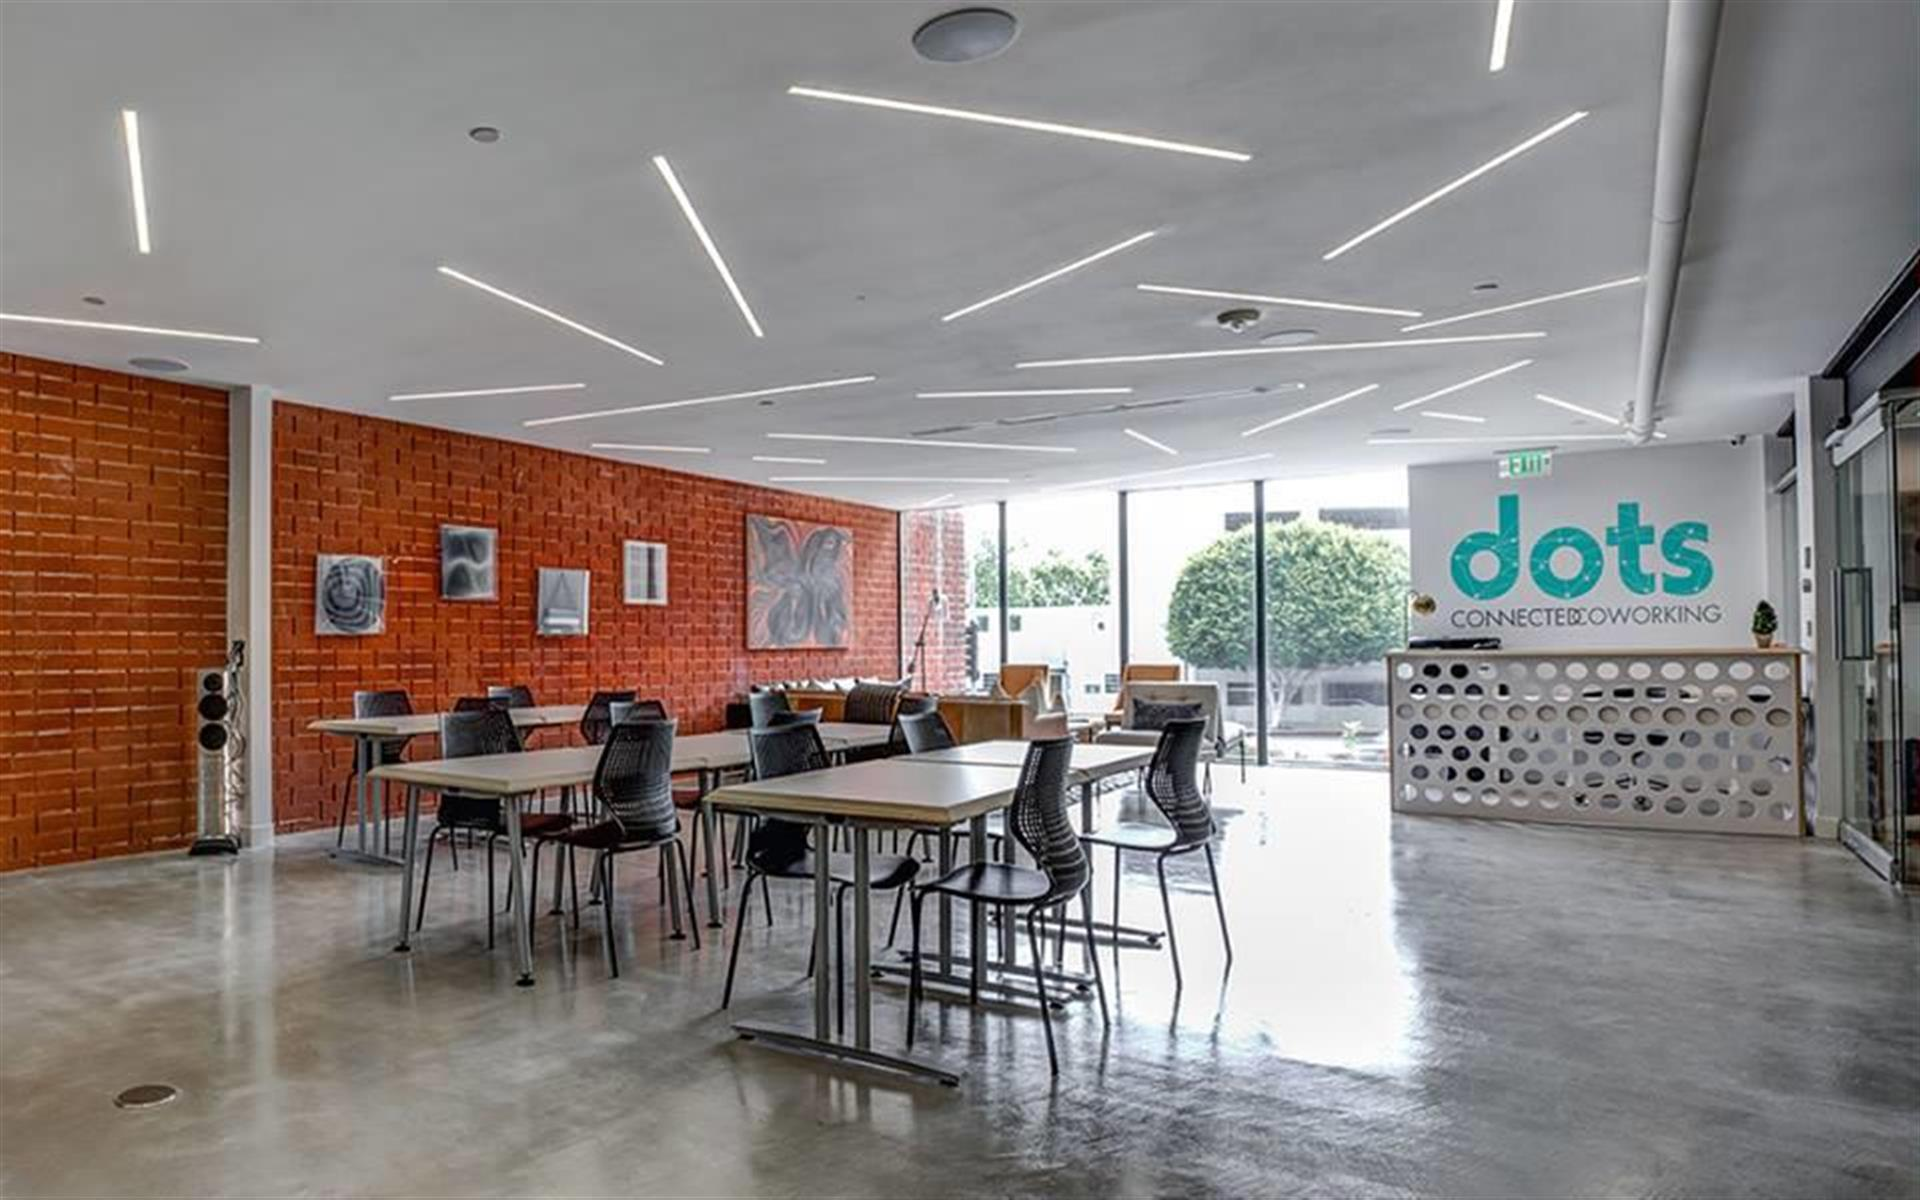 dots SPACE - Dedicated Spot